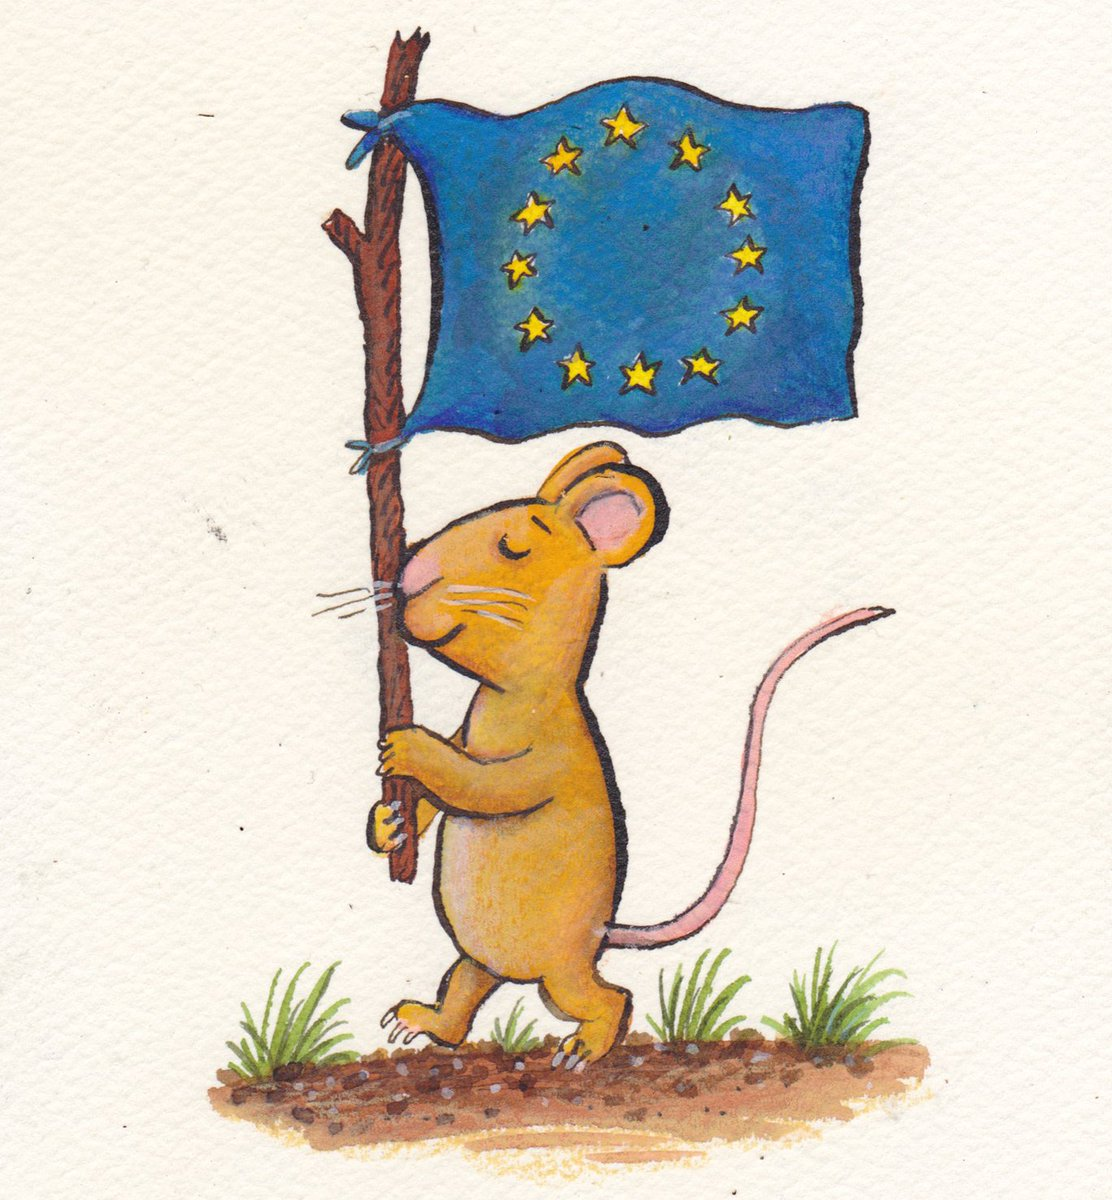 Without the EU, there would be no Gruffalo: Axel Scheffler on the prospect of Brexit https://t.co/0PBFNS7uBd https://t.co/V4DkAOoqWb